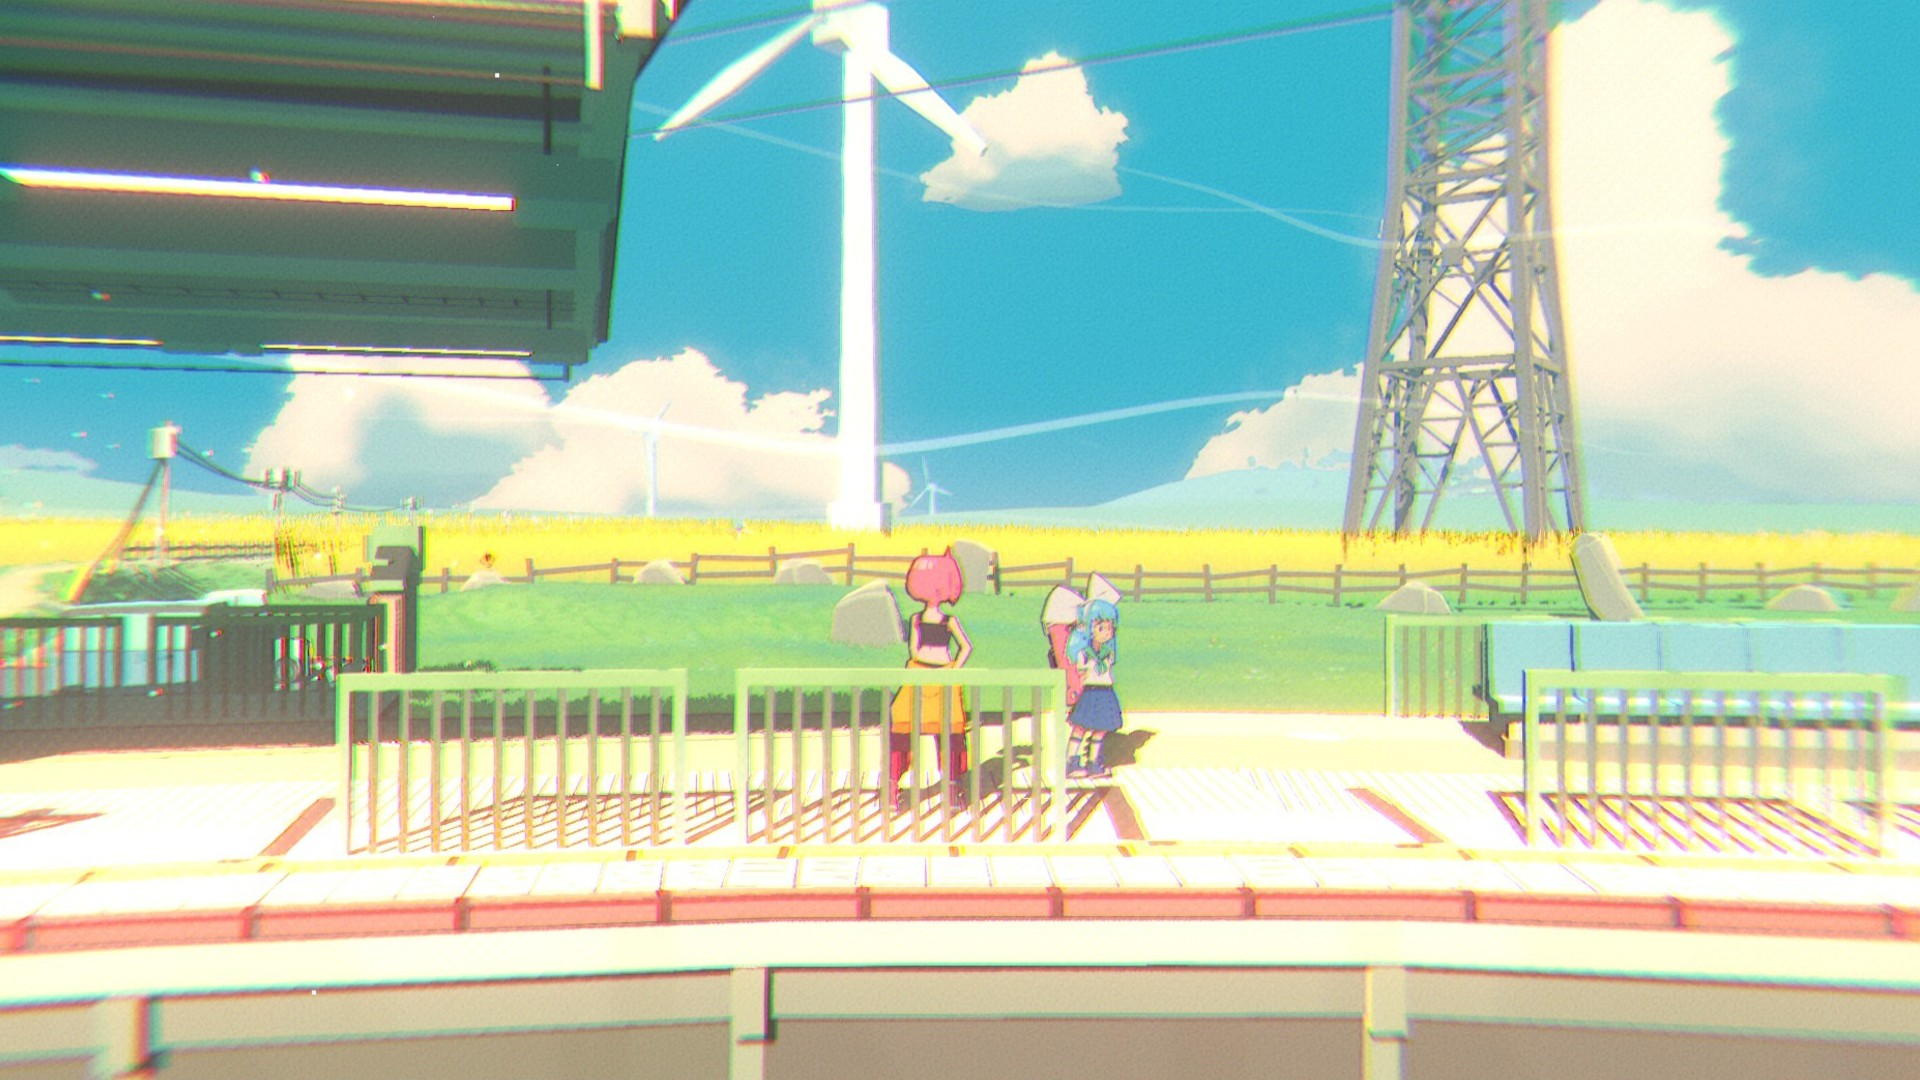 Unbeatable is an anime rhythm game where music is illegal, coming to Steam